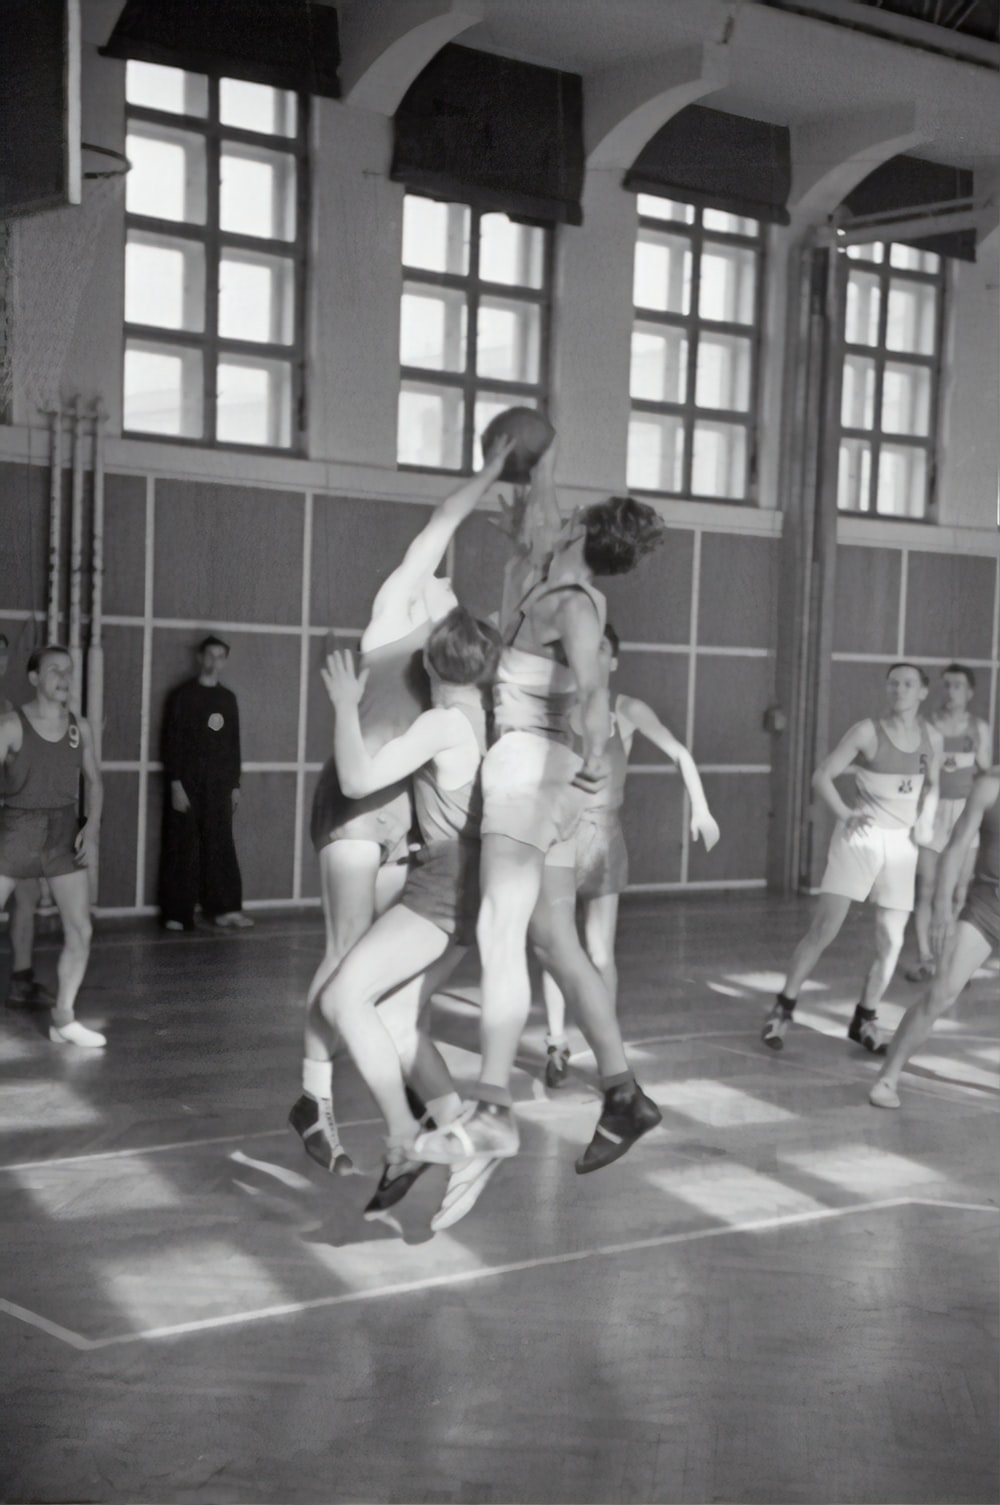 grayscale photography of men playing basketball